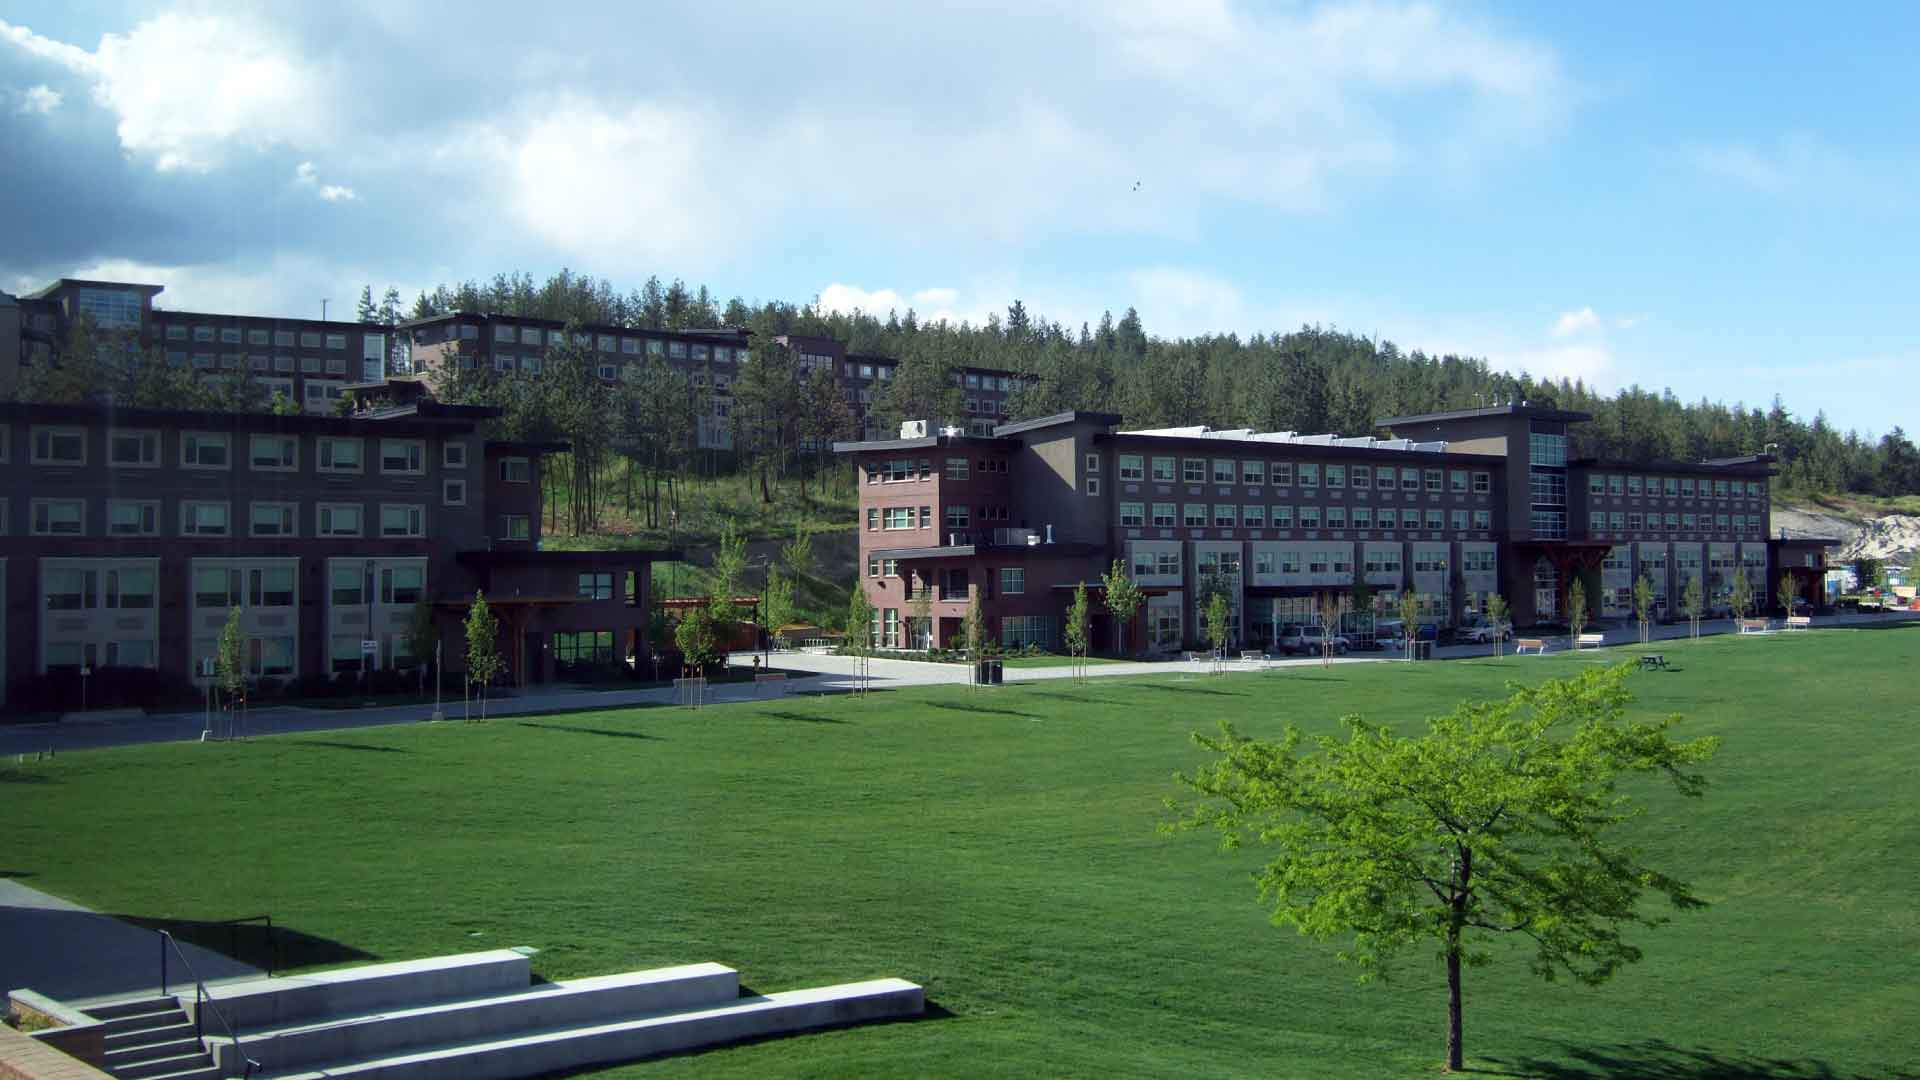 Campus at UBCO including Nicola Building